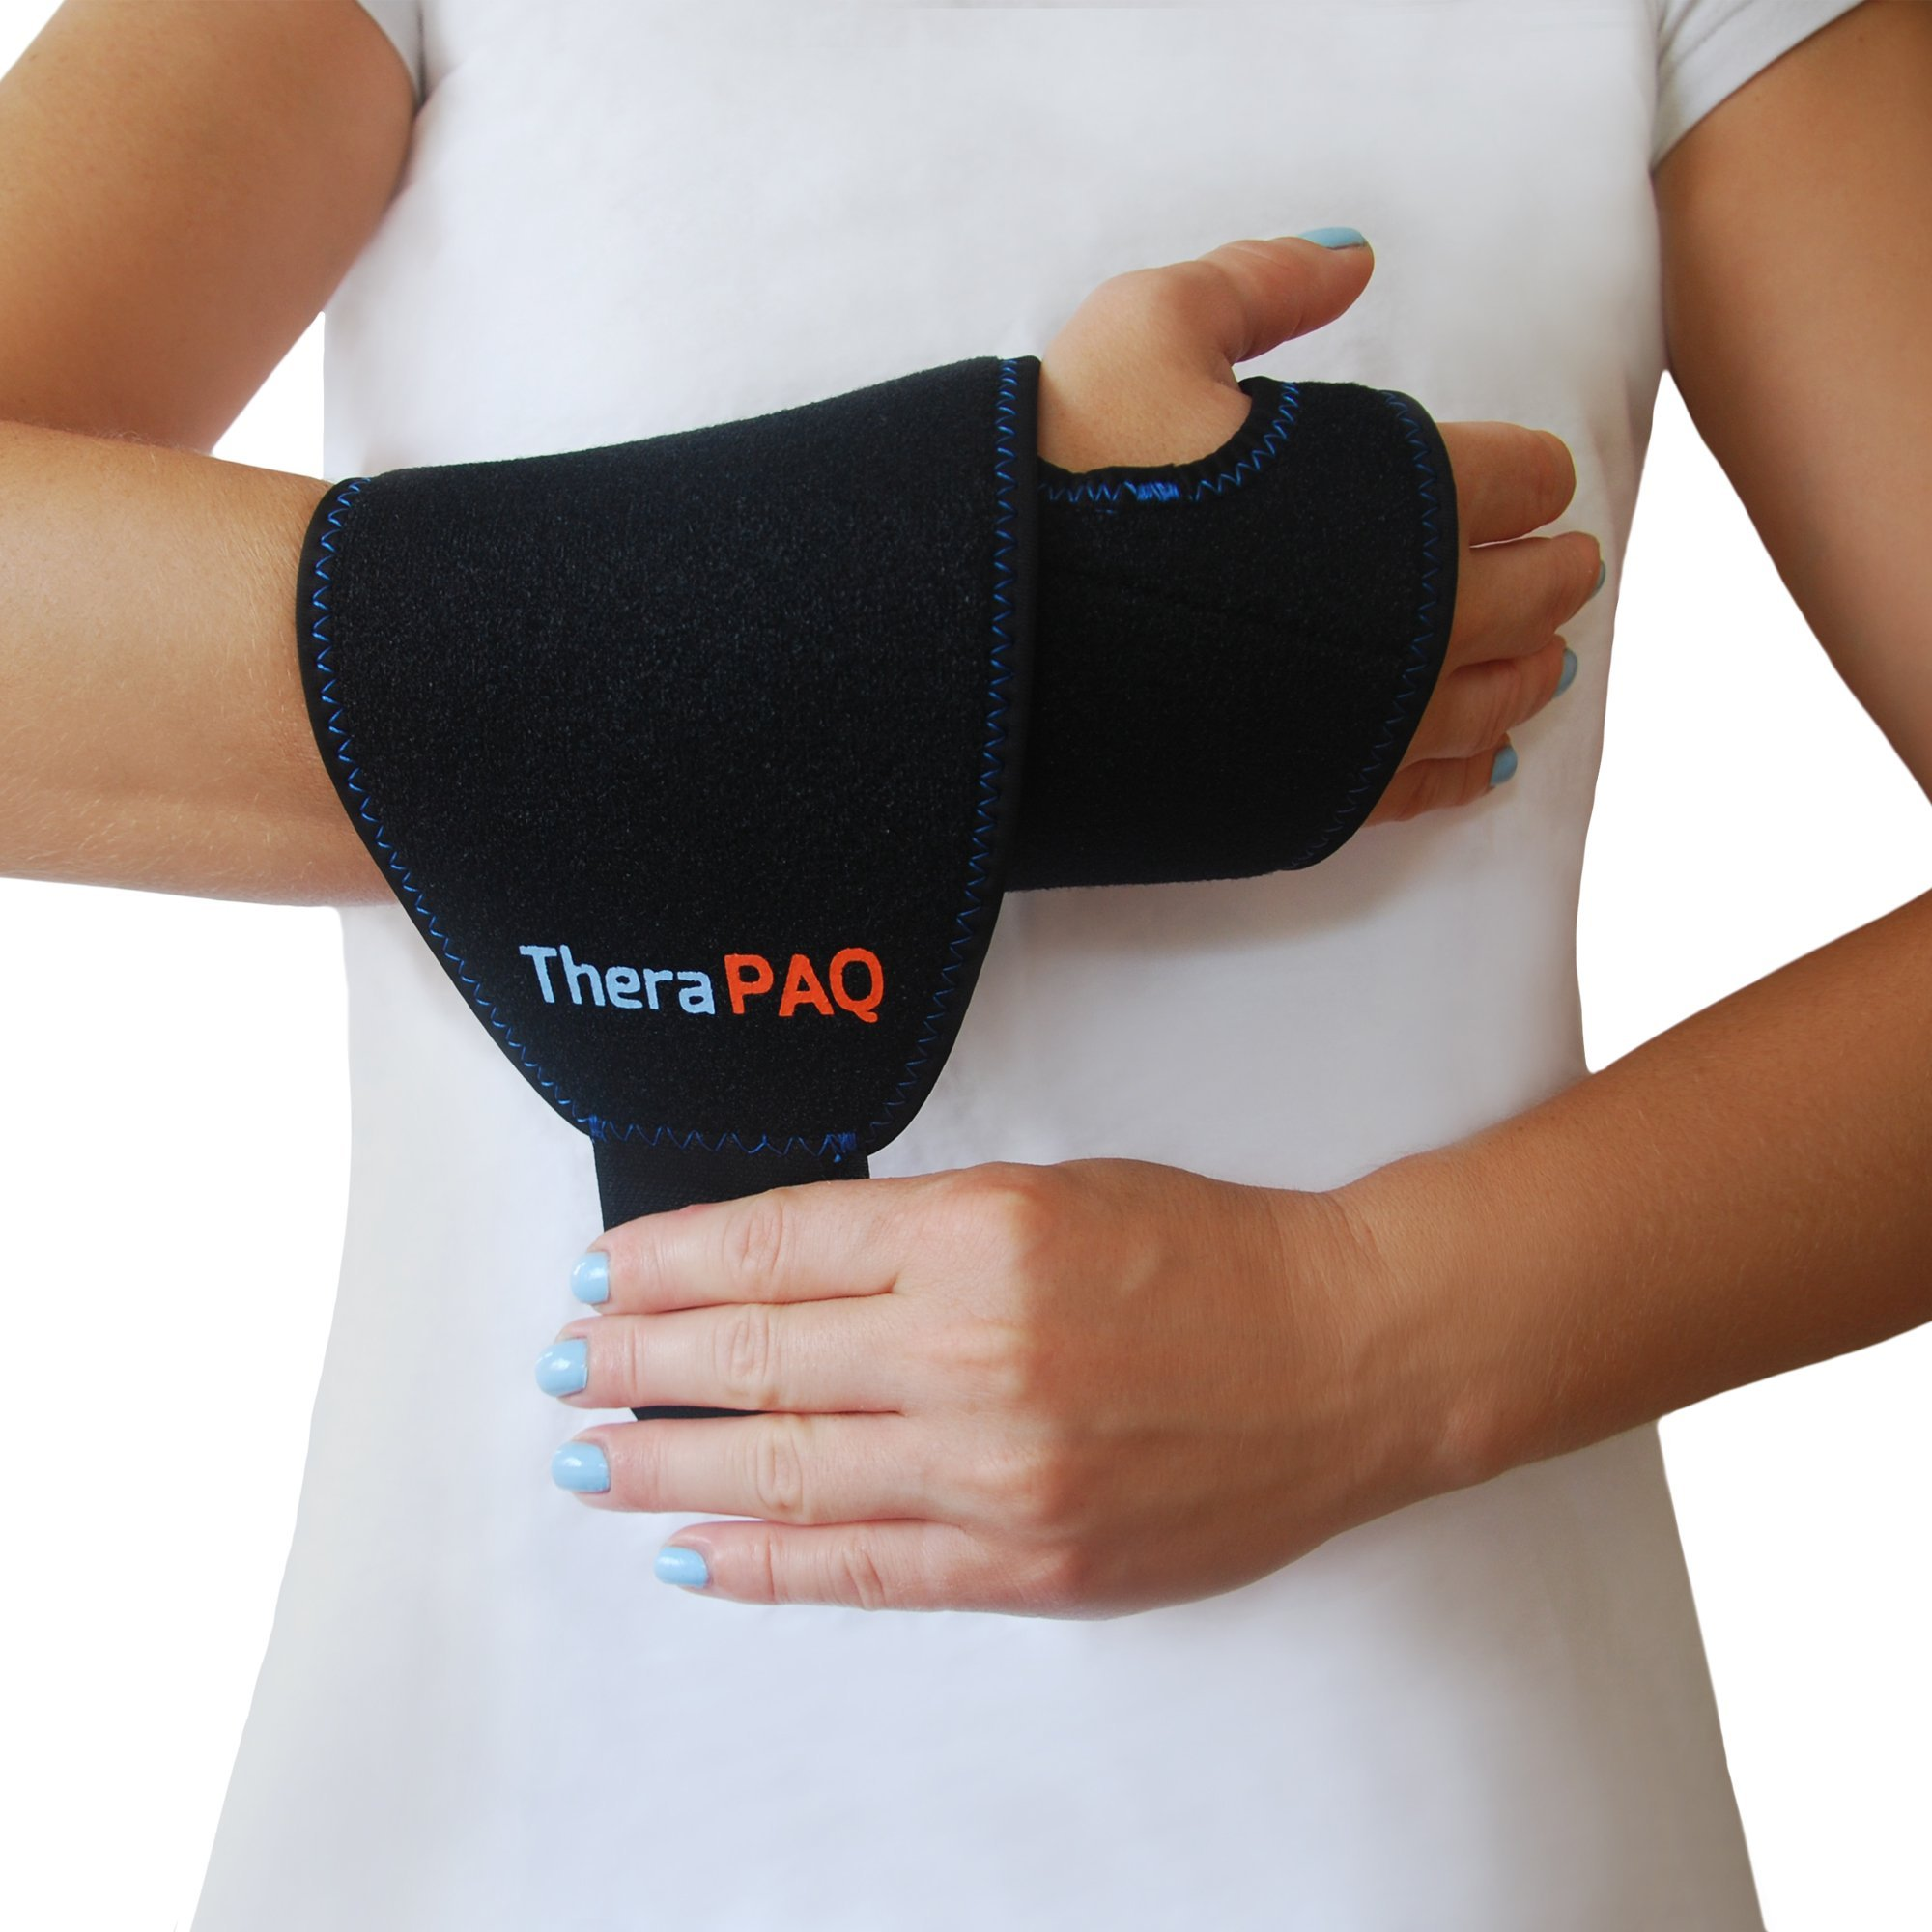 Wrist Ice Pack Wrap by TheraPAQ: Hand Support Brace with Reusable Gel Pack - Hot & Cold Therapy Relief from Carpal Tunnel Pain, Rheumatoid Arthritis, Tendonitis, Injuries, Swelling, Bruises & Sprains by TheraPAQ